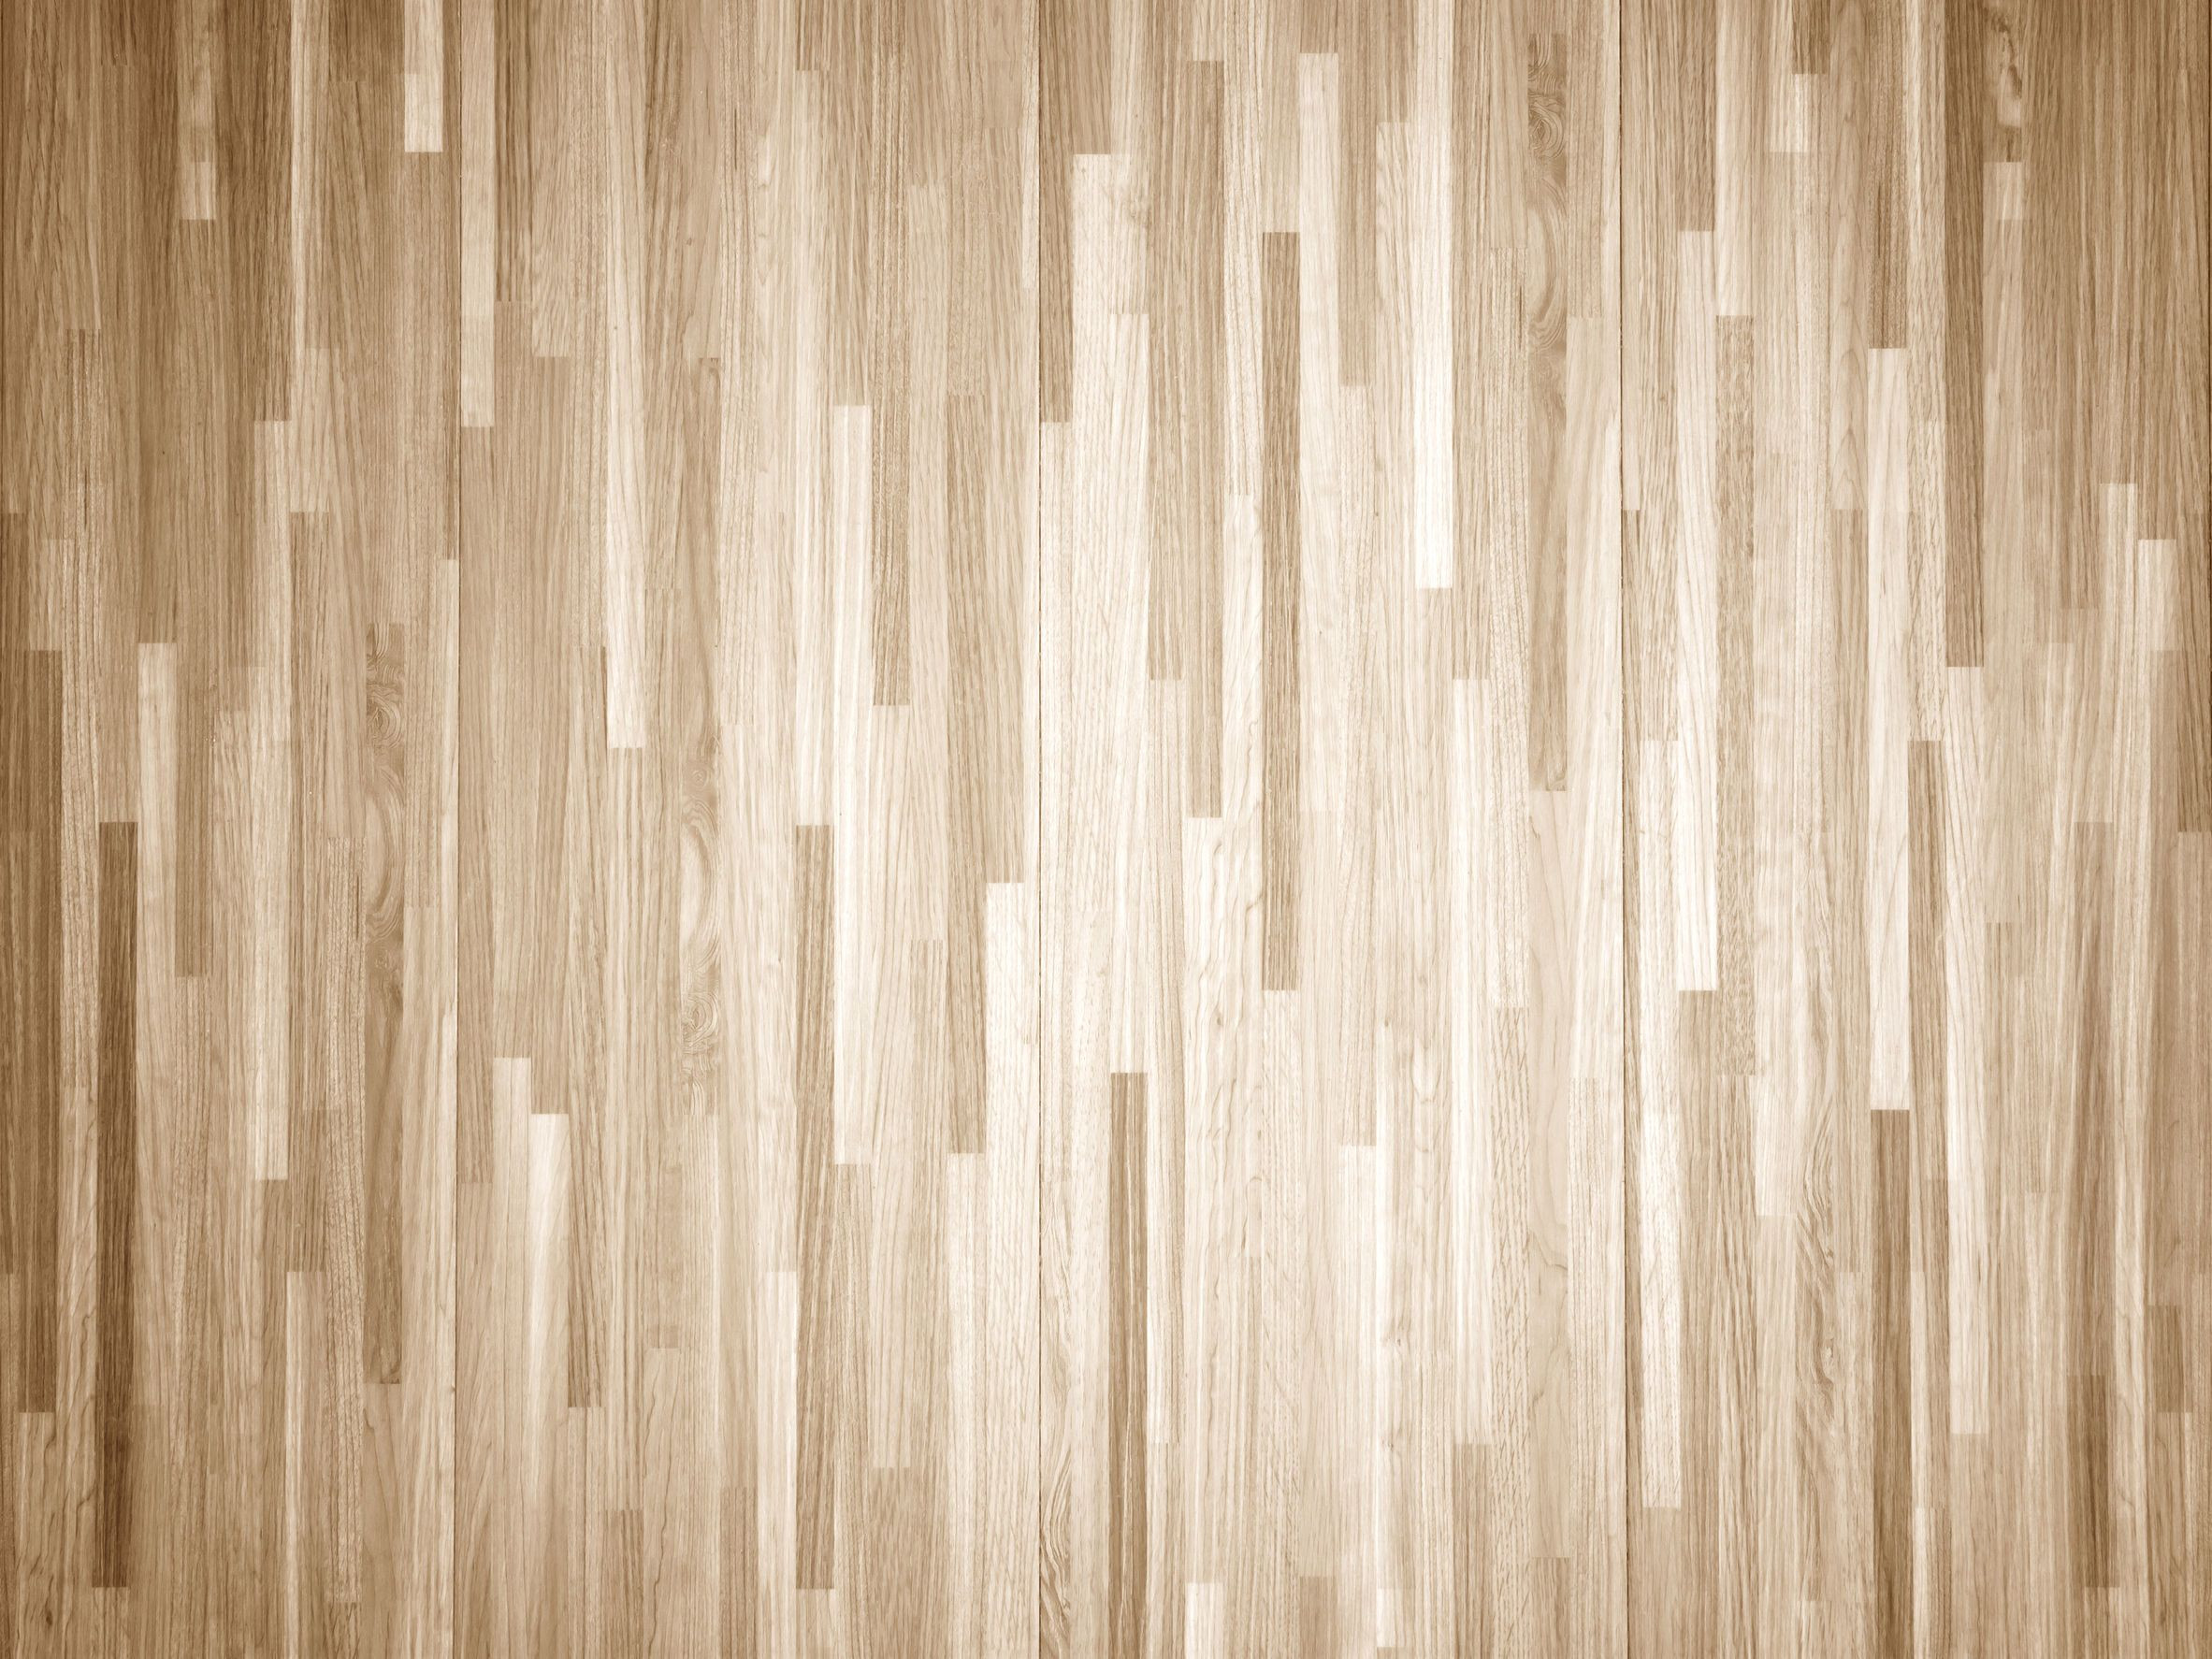 how much cost to refinish hardwood floors of how to chemically strip wood floors woodfloordoctor com regarding you